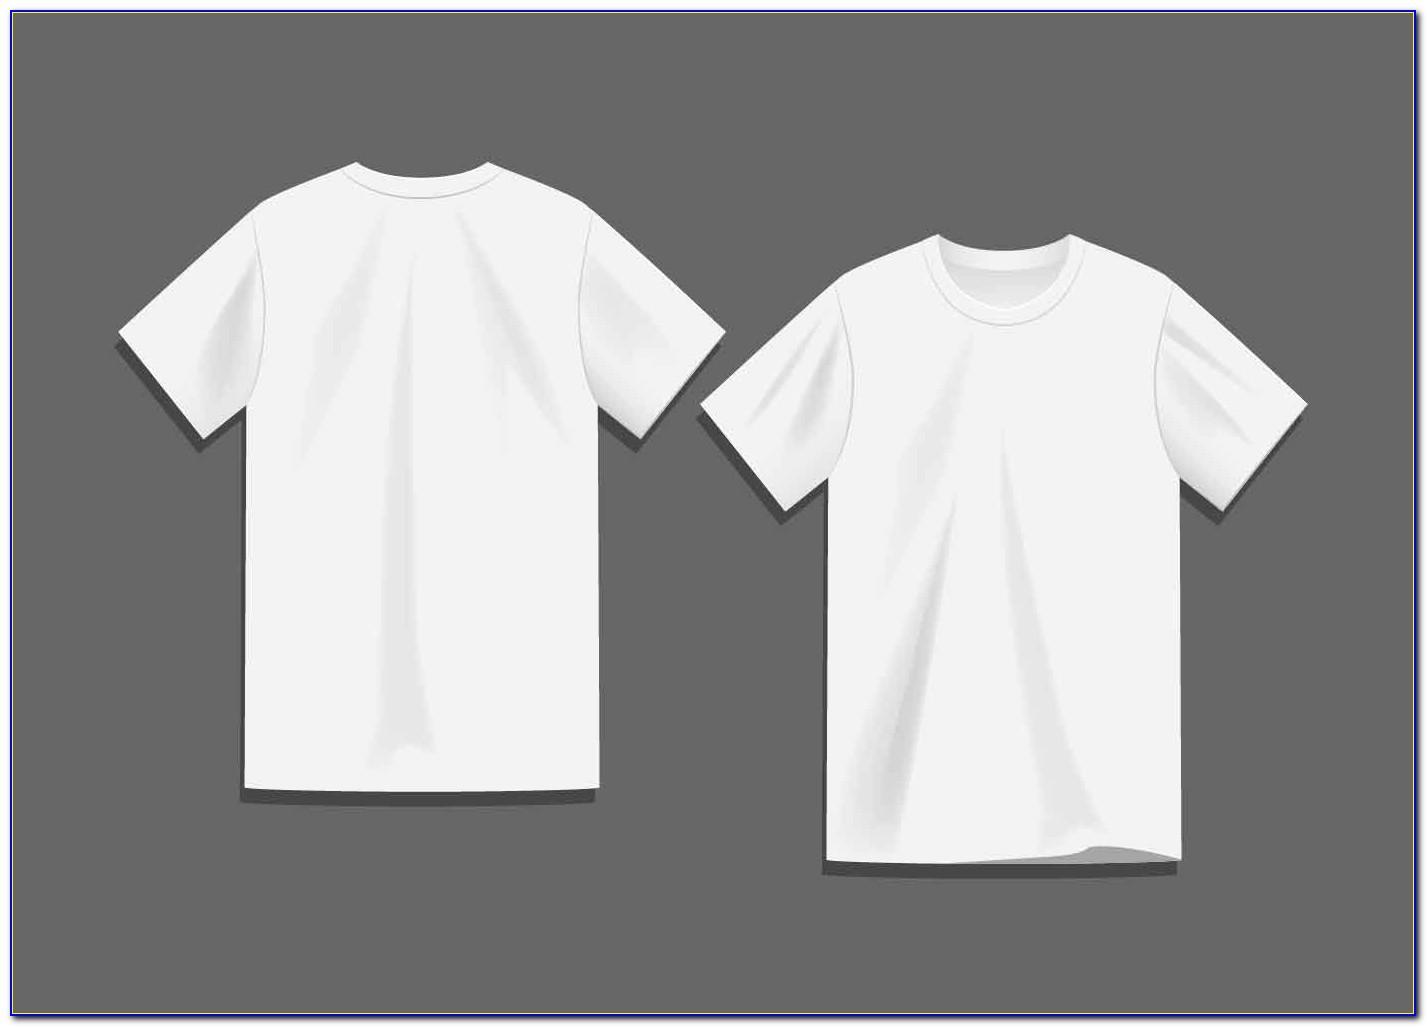 Free T Shirt Design Template Download